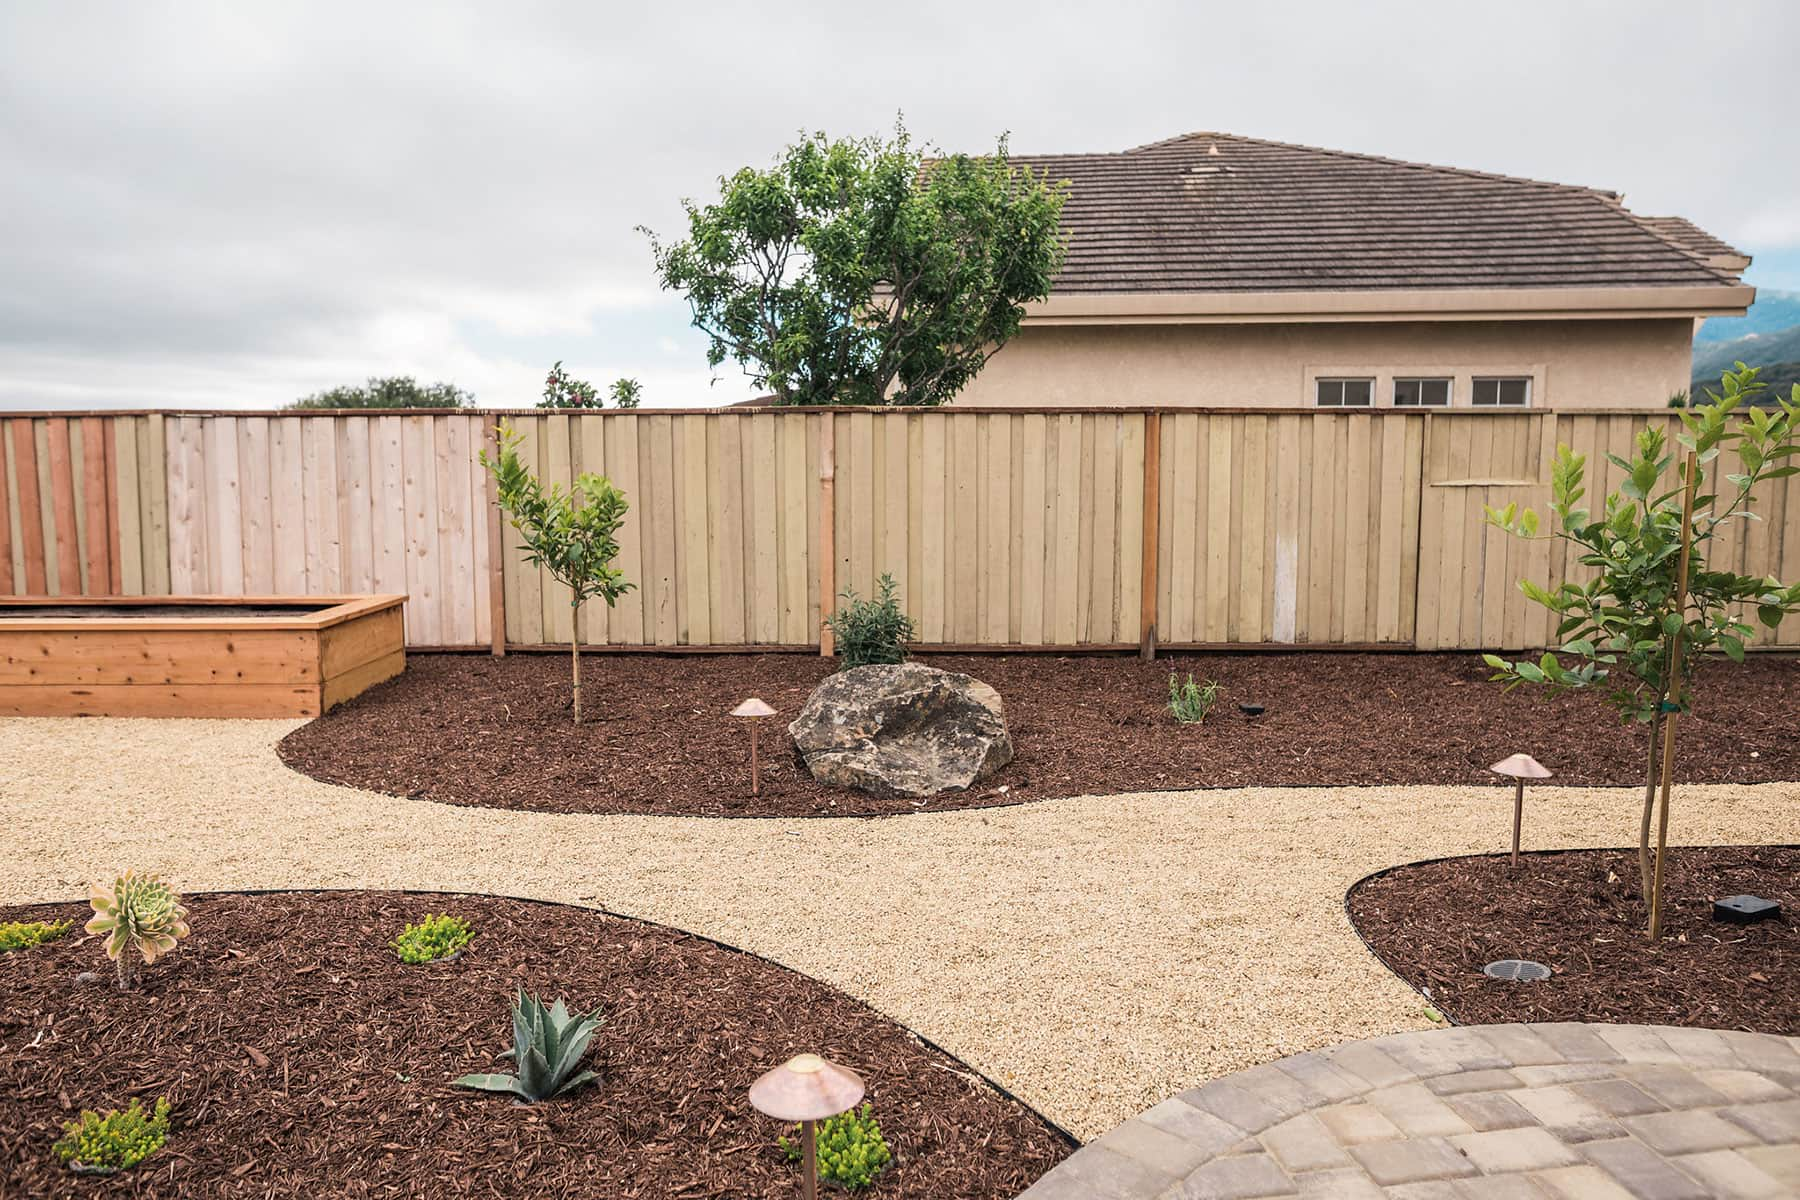 Decomposed Granite Paths and Patios - K&D Landscaping on Decomposed Granite Backyard Ideas id=17806